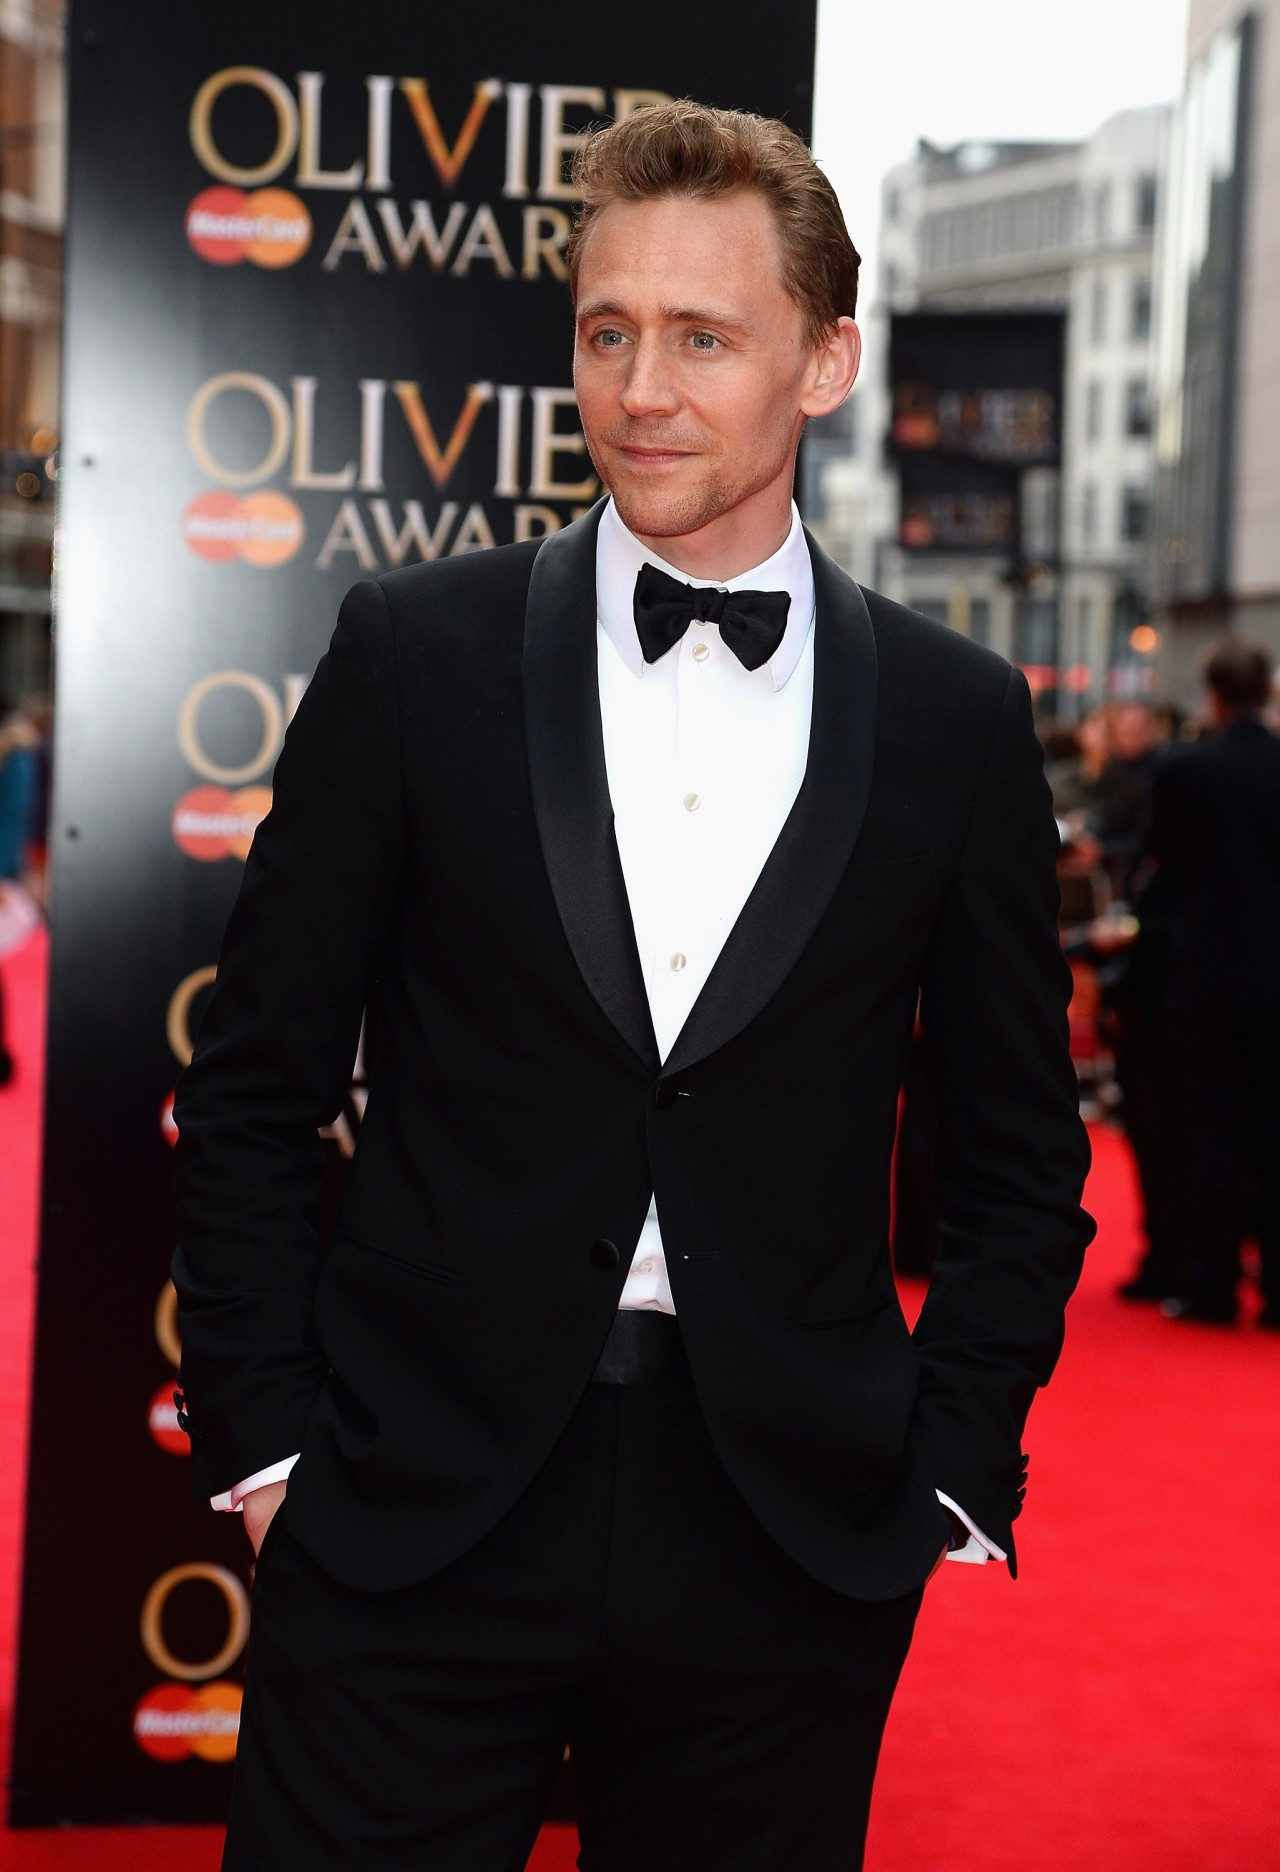 torrilla:  Tom Hiddleston arrives at The Laurence Olivier Awards 2013 at The Royal Opera House on April 28, 2013 in London, England [HQ]